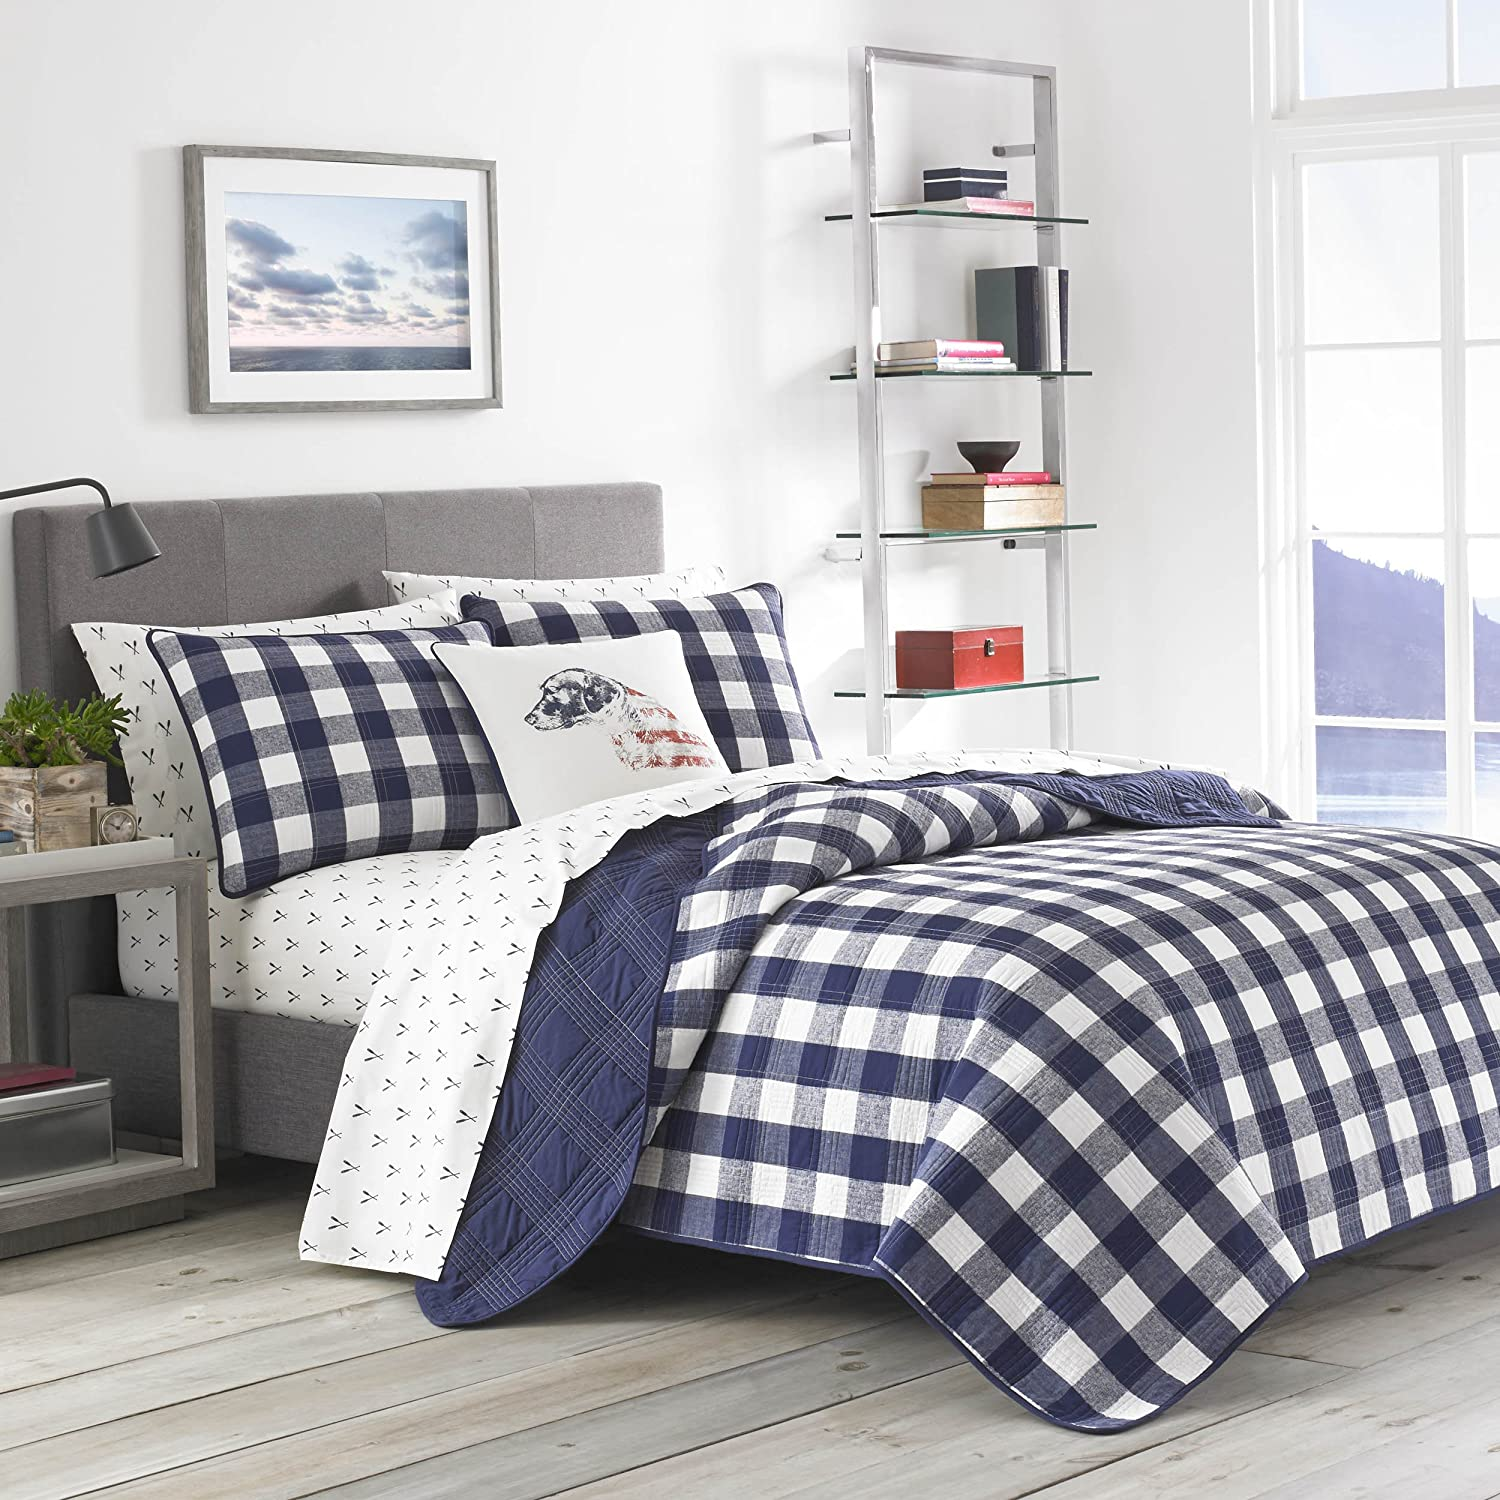 Eddie Bauer Lake House Plaid Quilt Set, Full/Queen, Blue